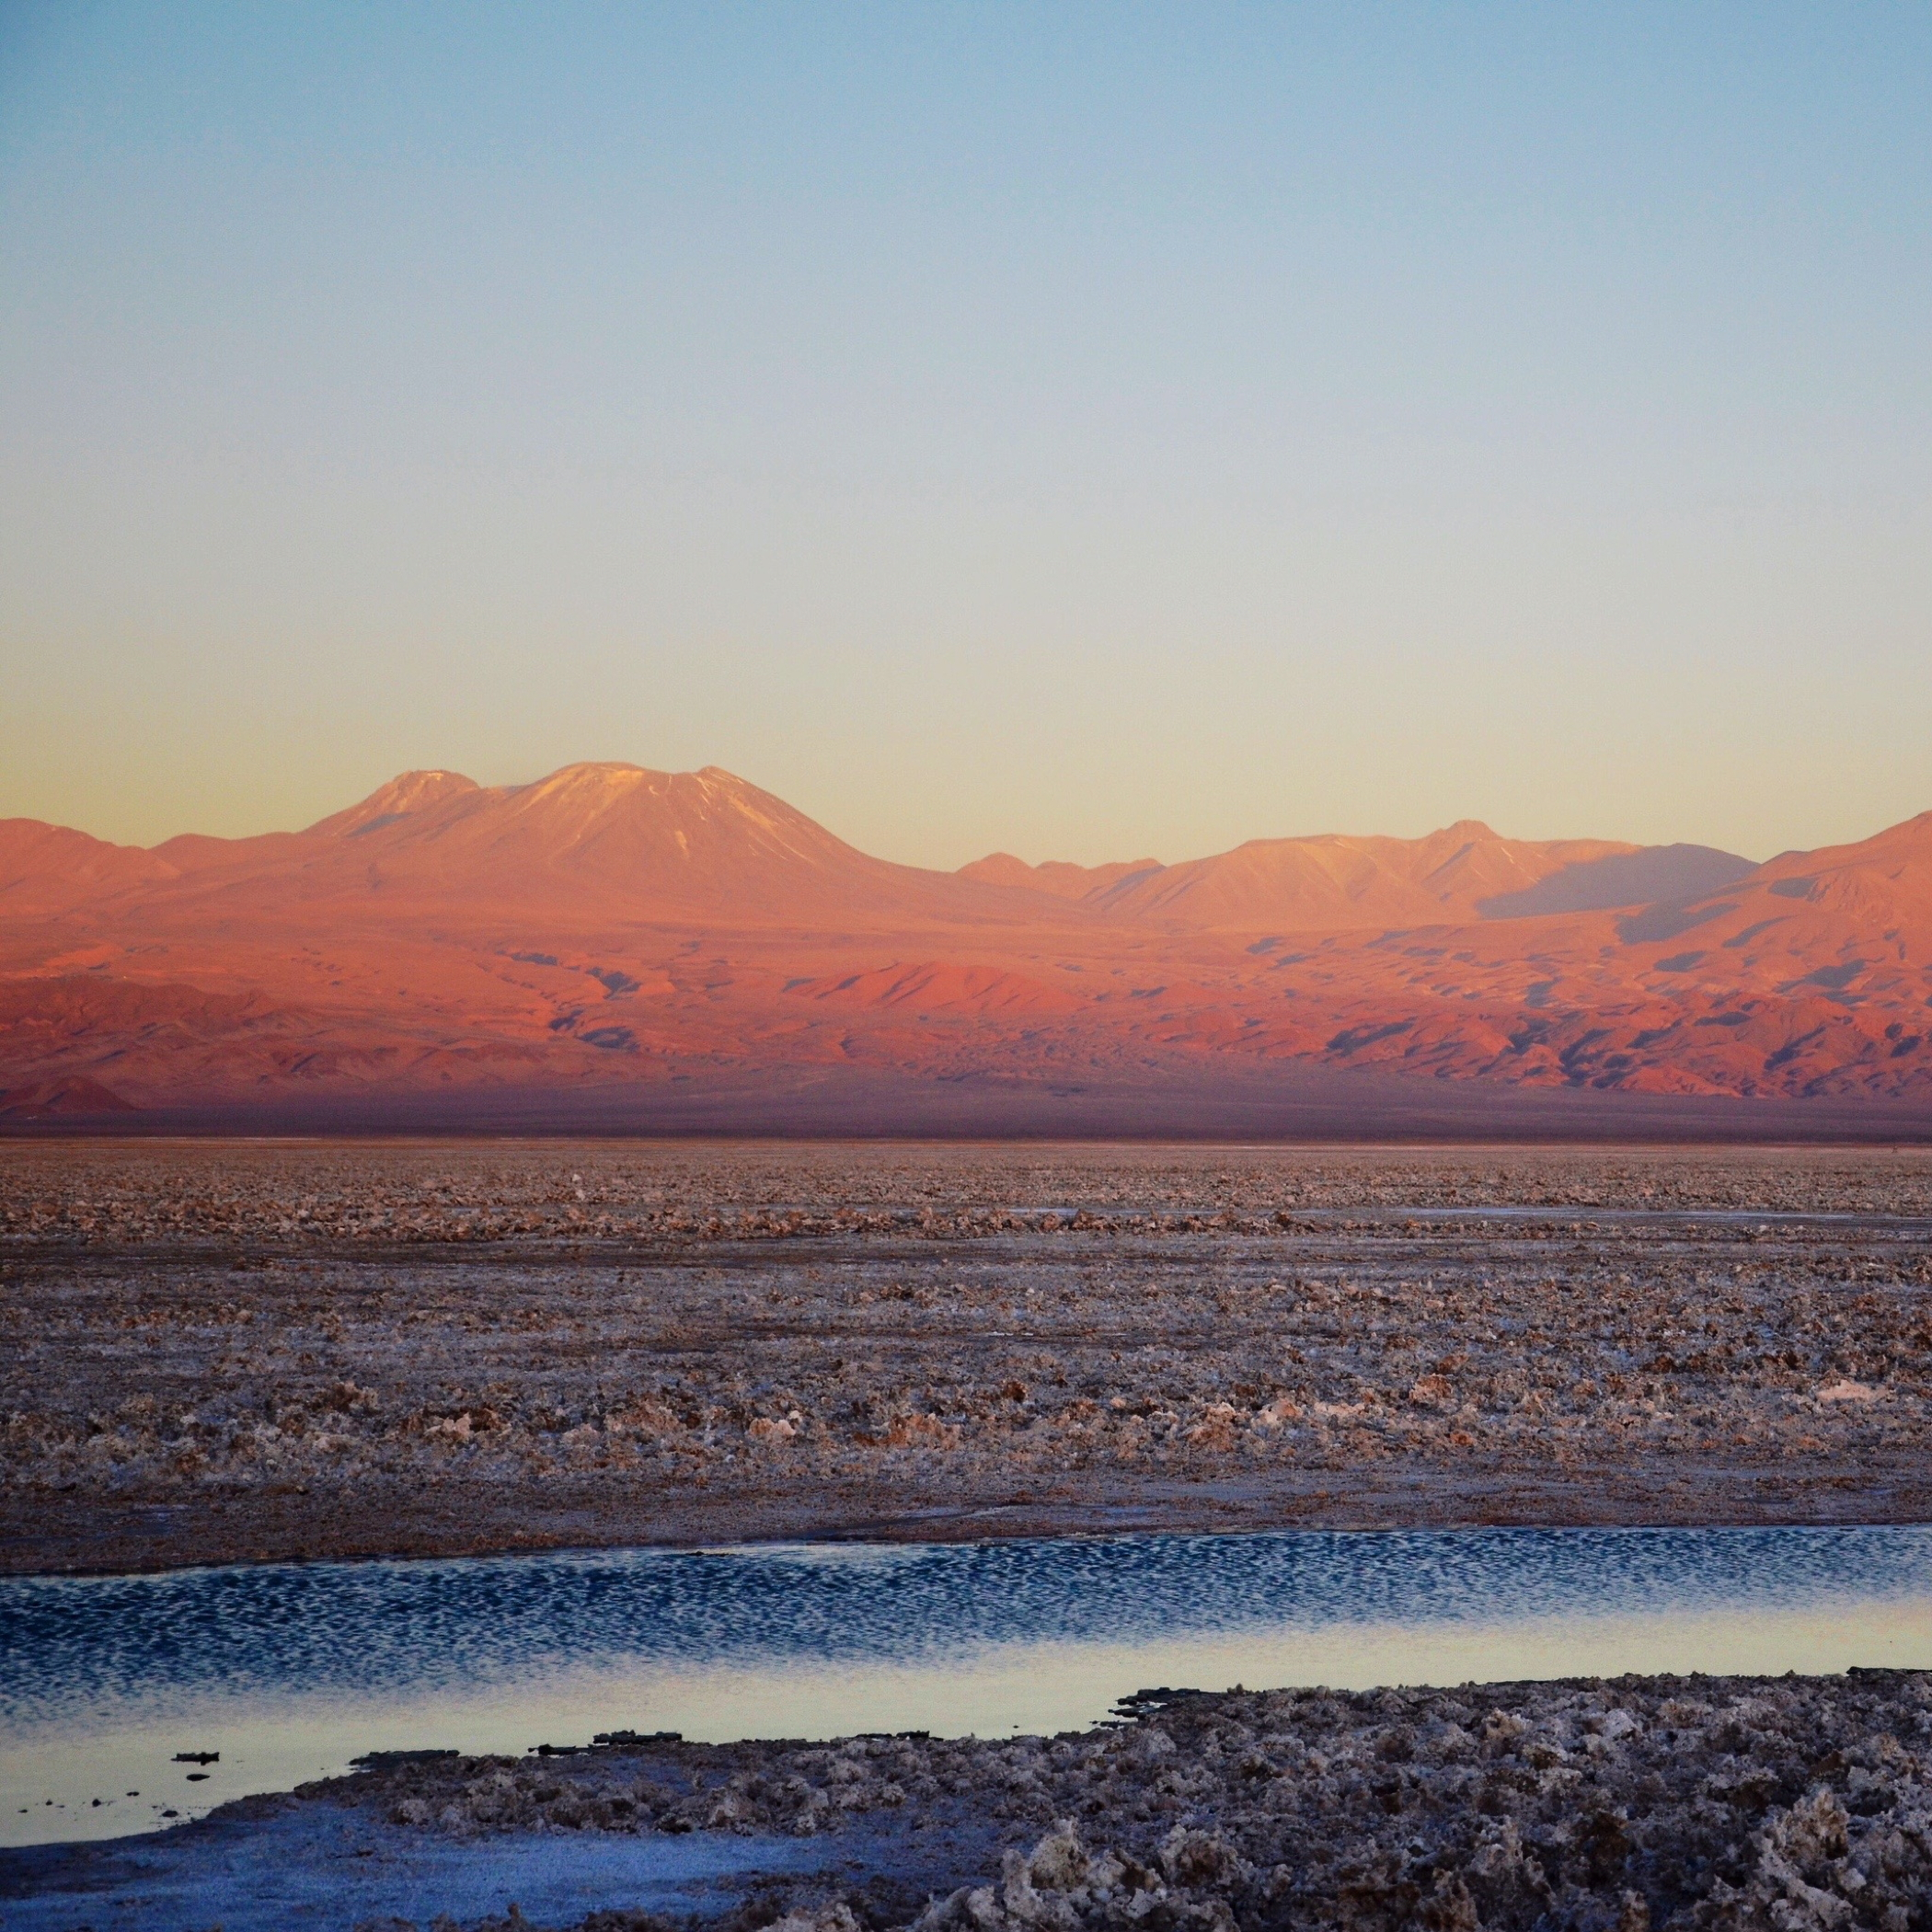 One favorite Instagram 2015 photo from Atacama desert in Chile